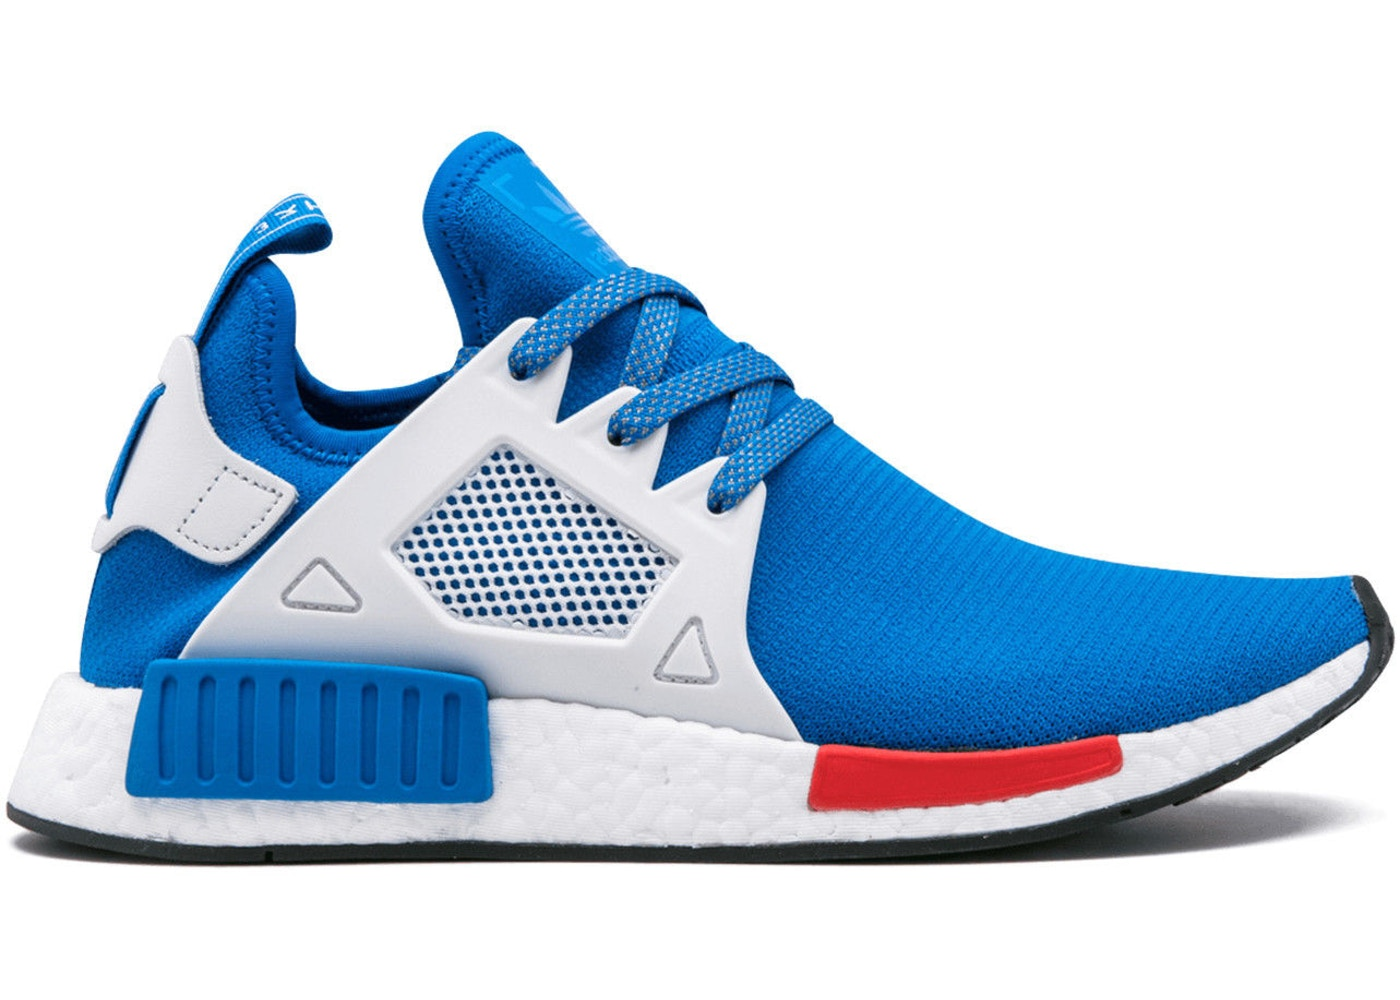 2e61a0ff9e29a adidas NMD XR1 Footlocker Europe Bluebird - CG3092